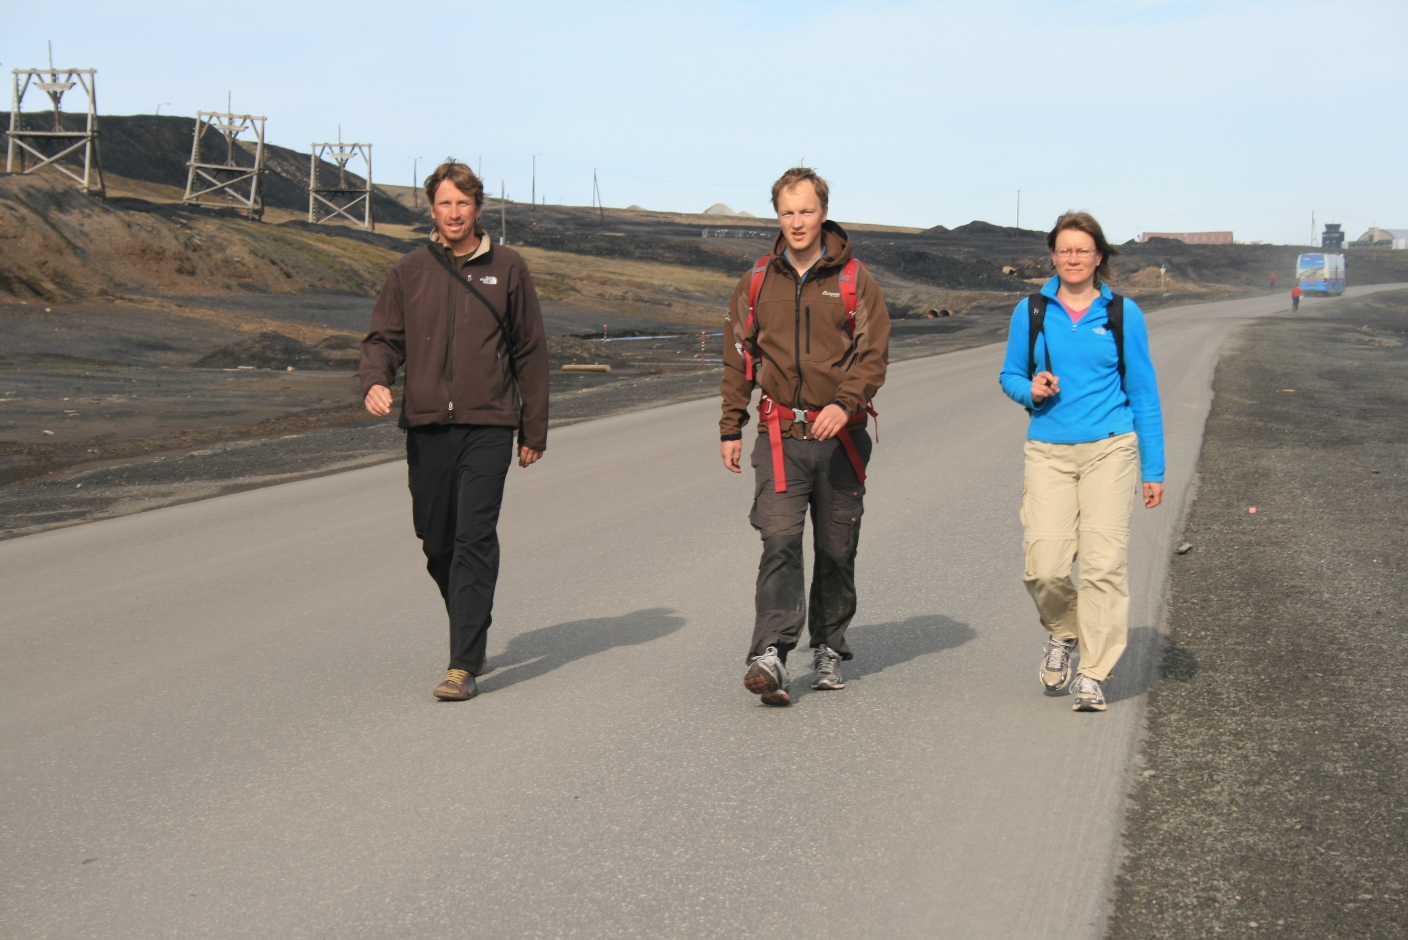 Fieldsampling team heading into Longyearbyen (l-r): Olivier, Gjermund and Ulla